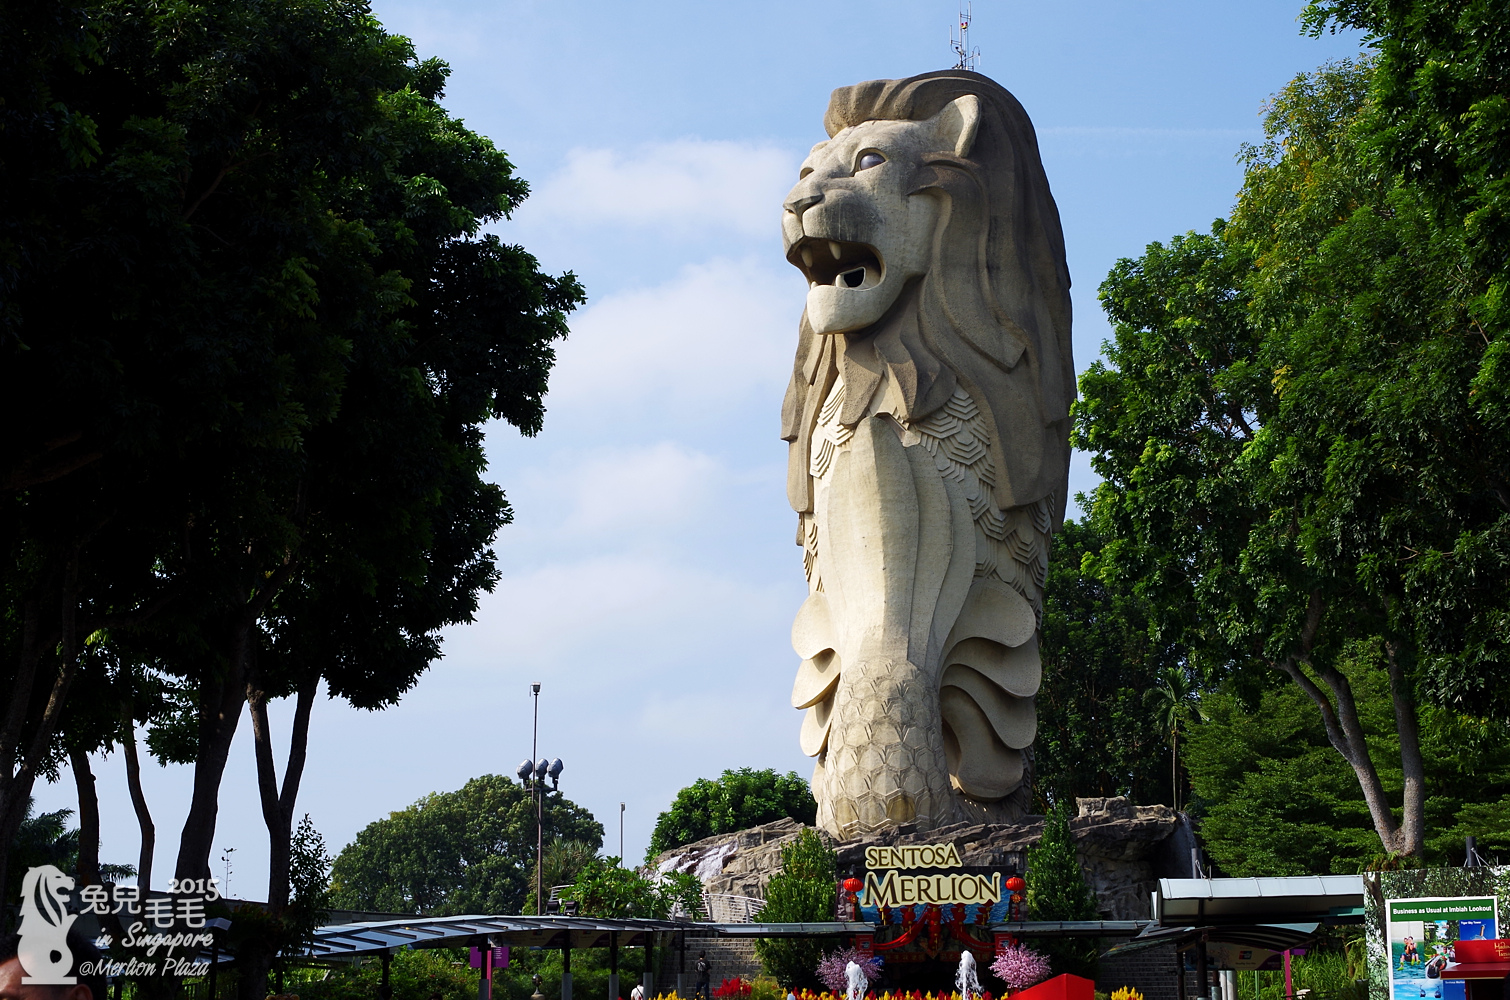 0215-Merlion Plaza-08.jpg